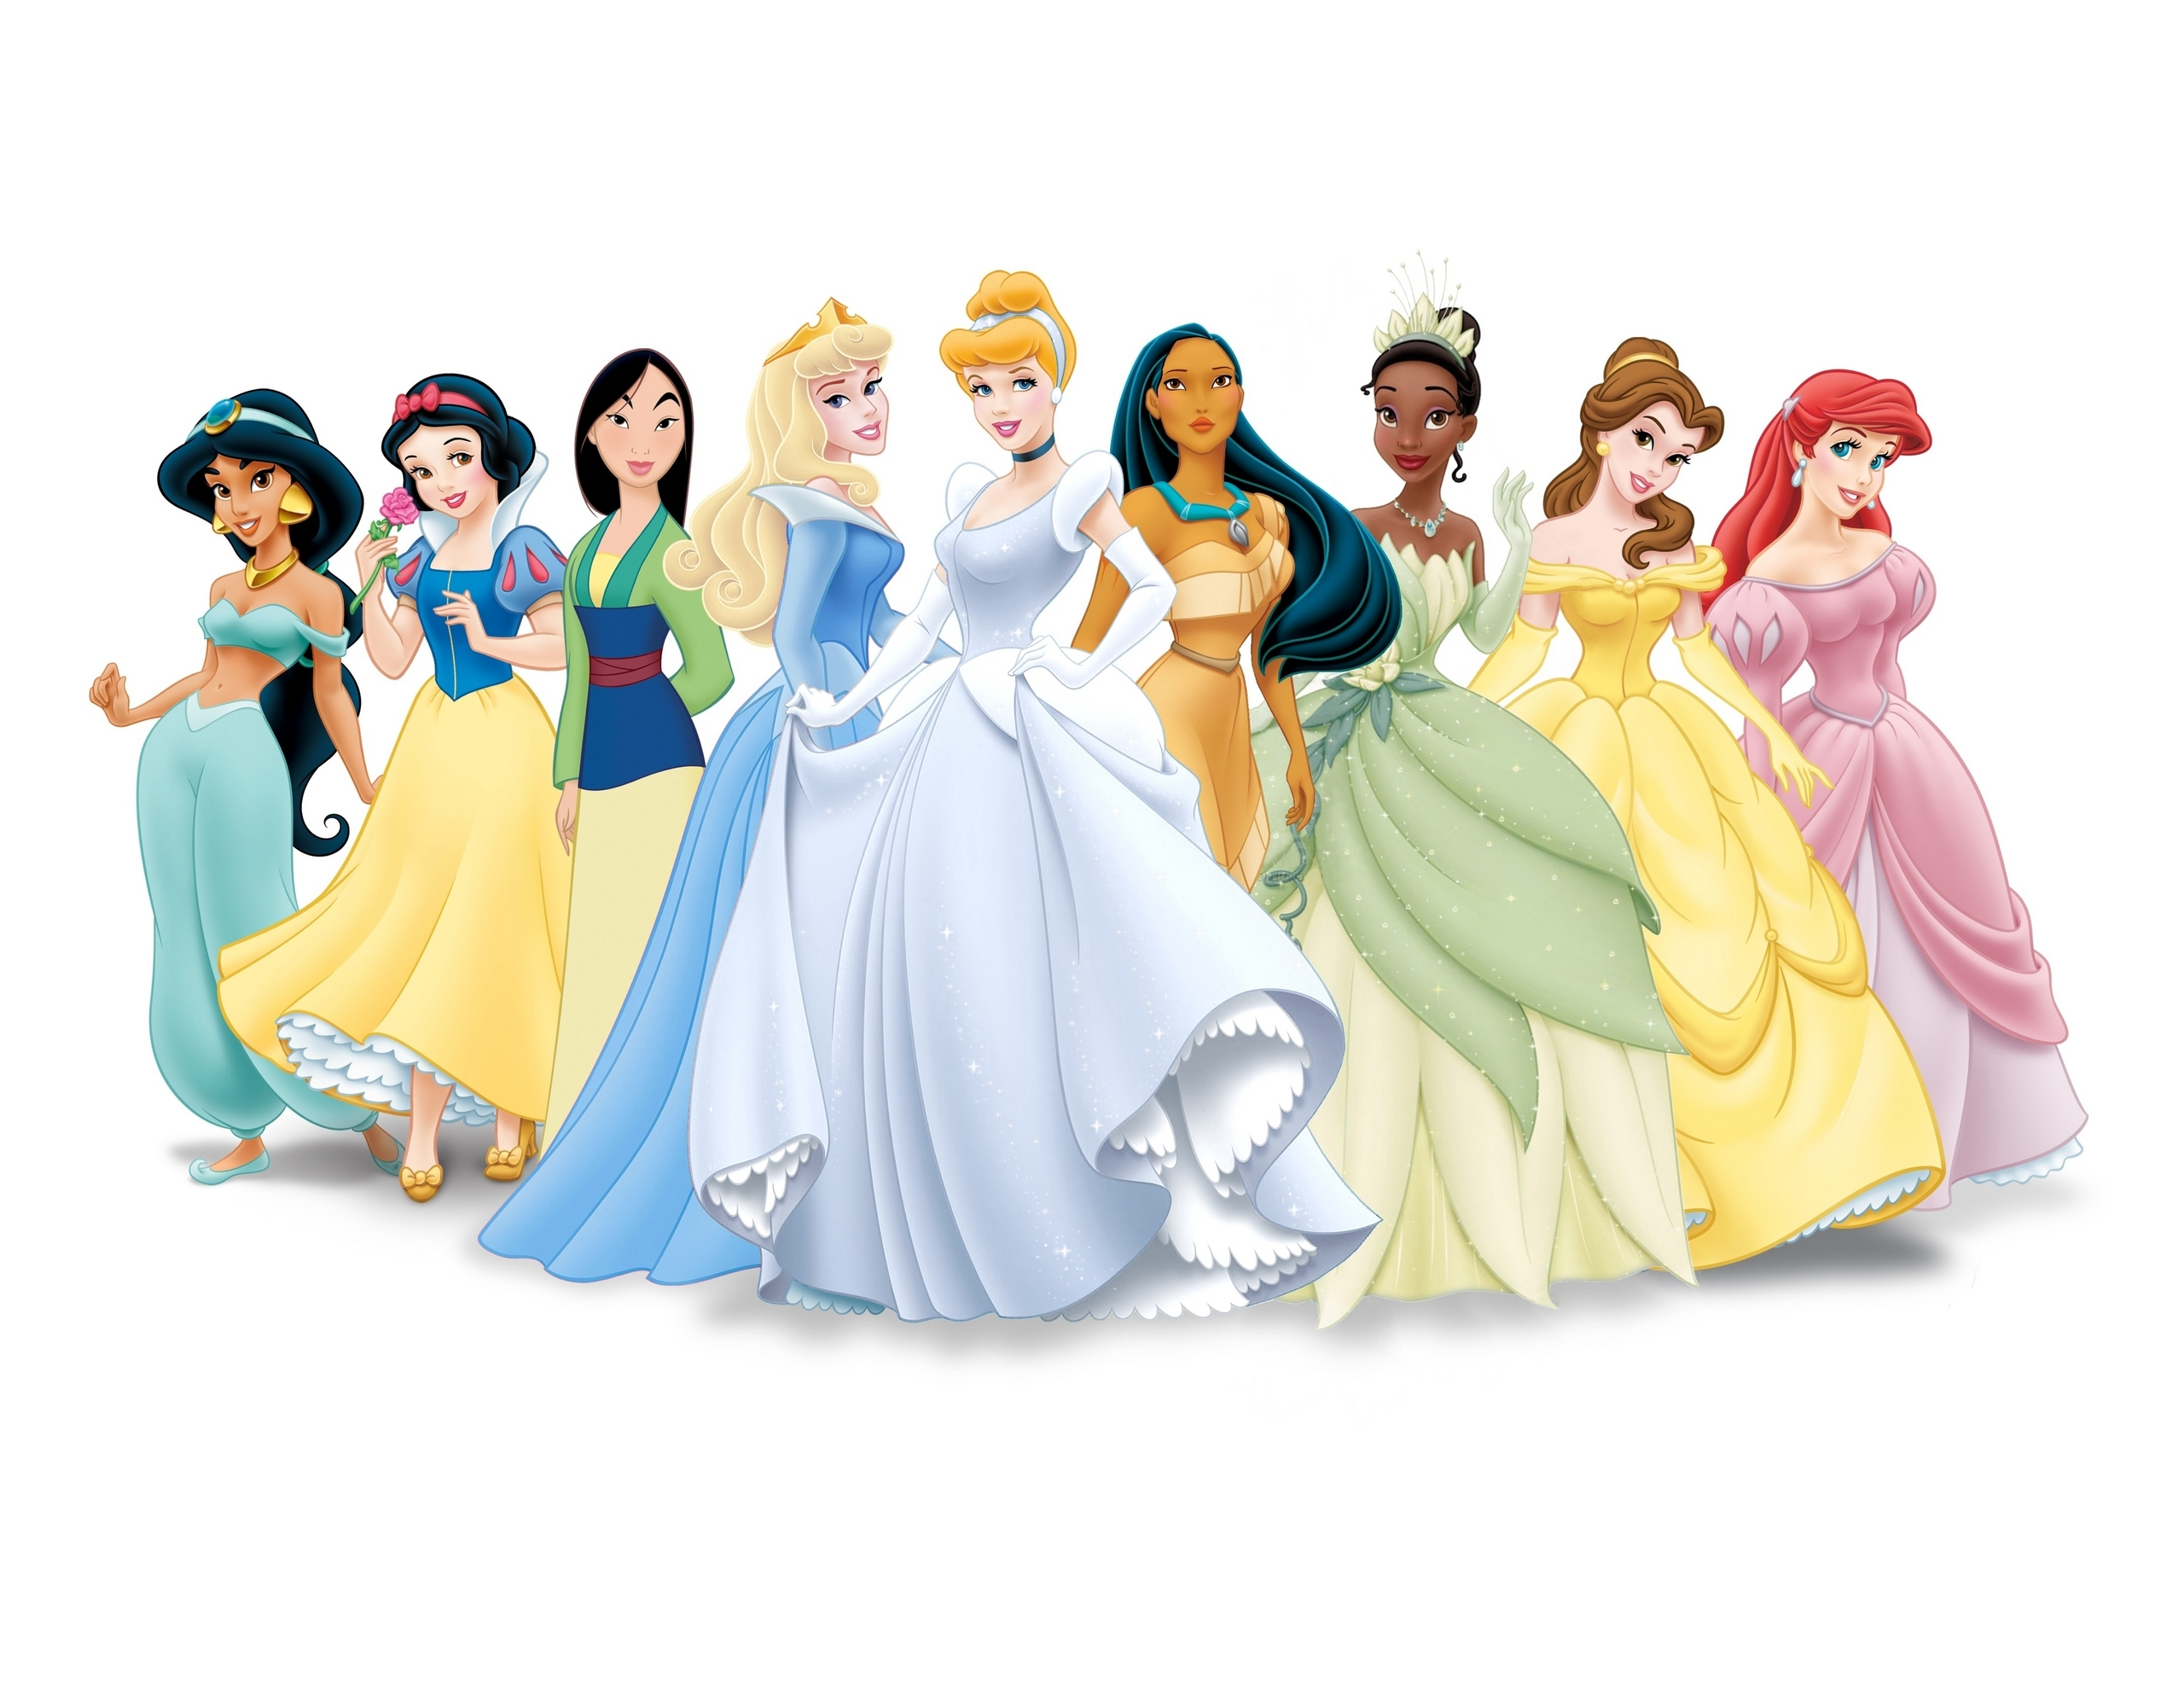 New Disney Princess Lineup movie version disney princess 10376587 2560 2560x1983